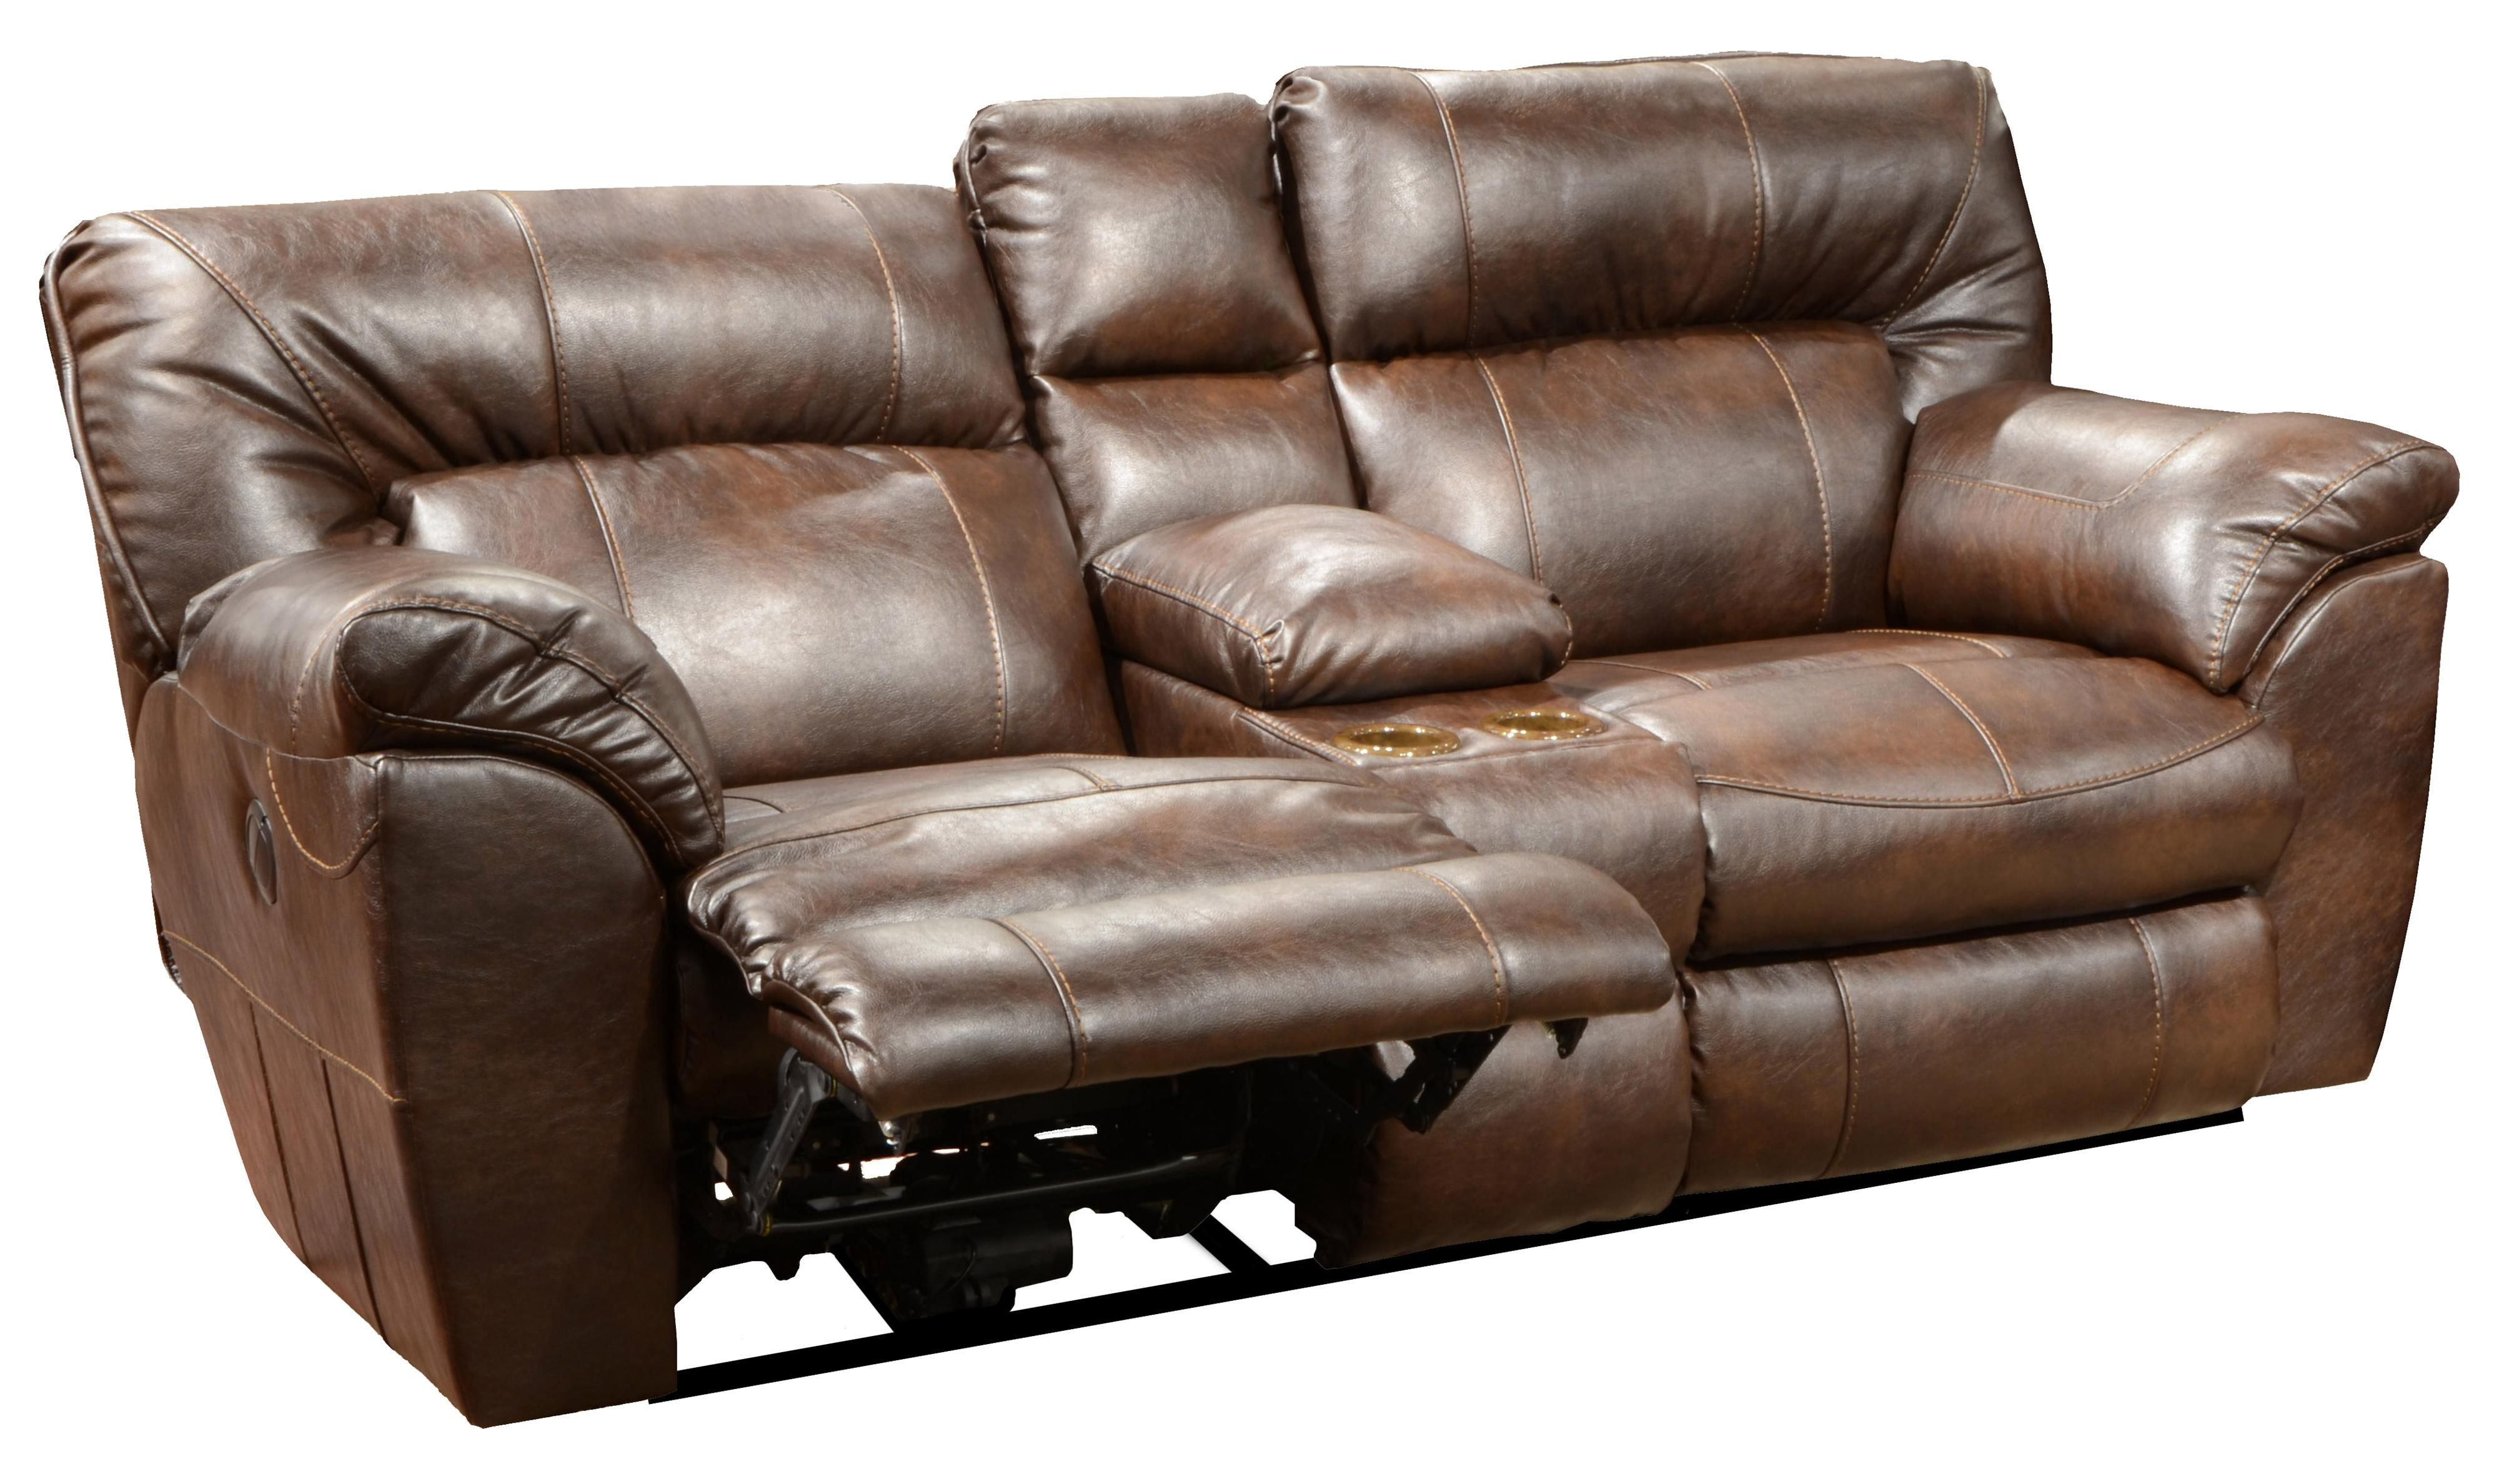 Loveseat Recliner Sofas A Quick View On These Marvelous Recliners Loveseat Recliners Power Reclining Loveseat Sofa Inspiration